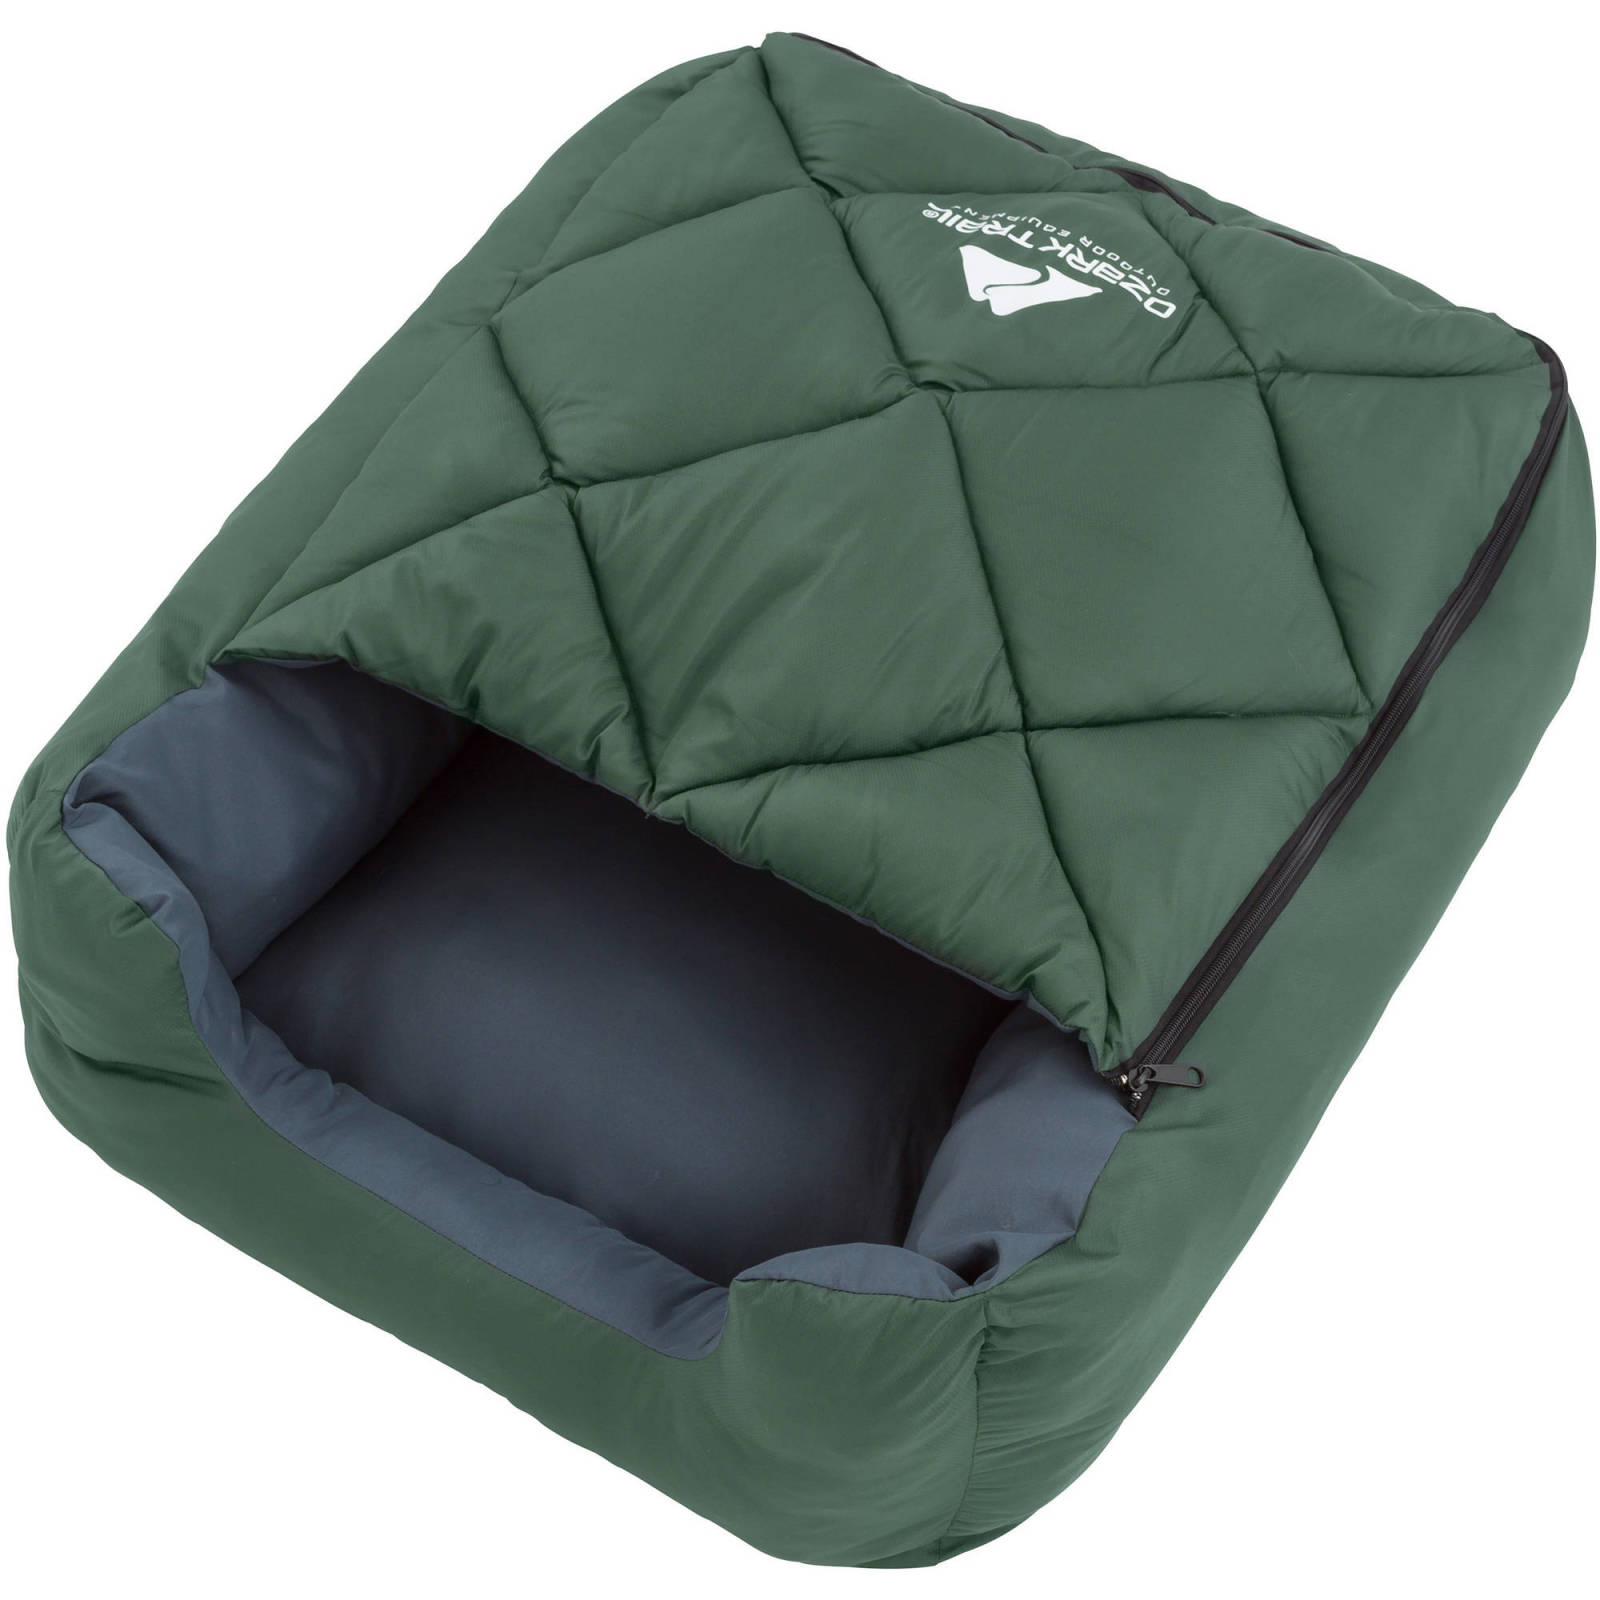 Dog Sleeping Bag Pet Soft Bed Cushion Pillow Camping To 25 Lbs Puppy Ozark Trail